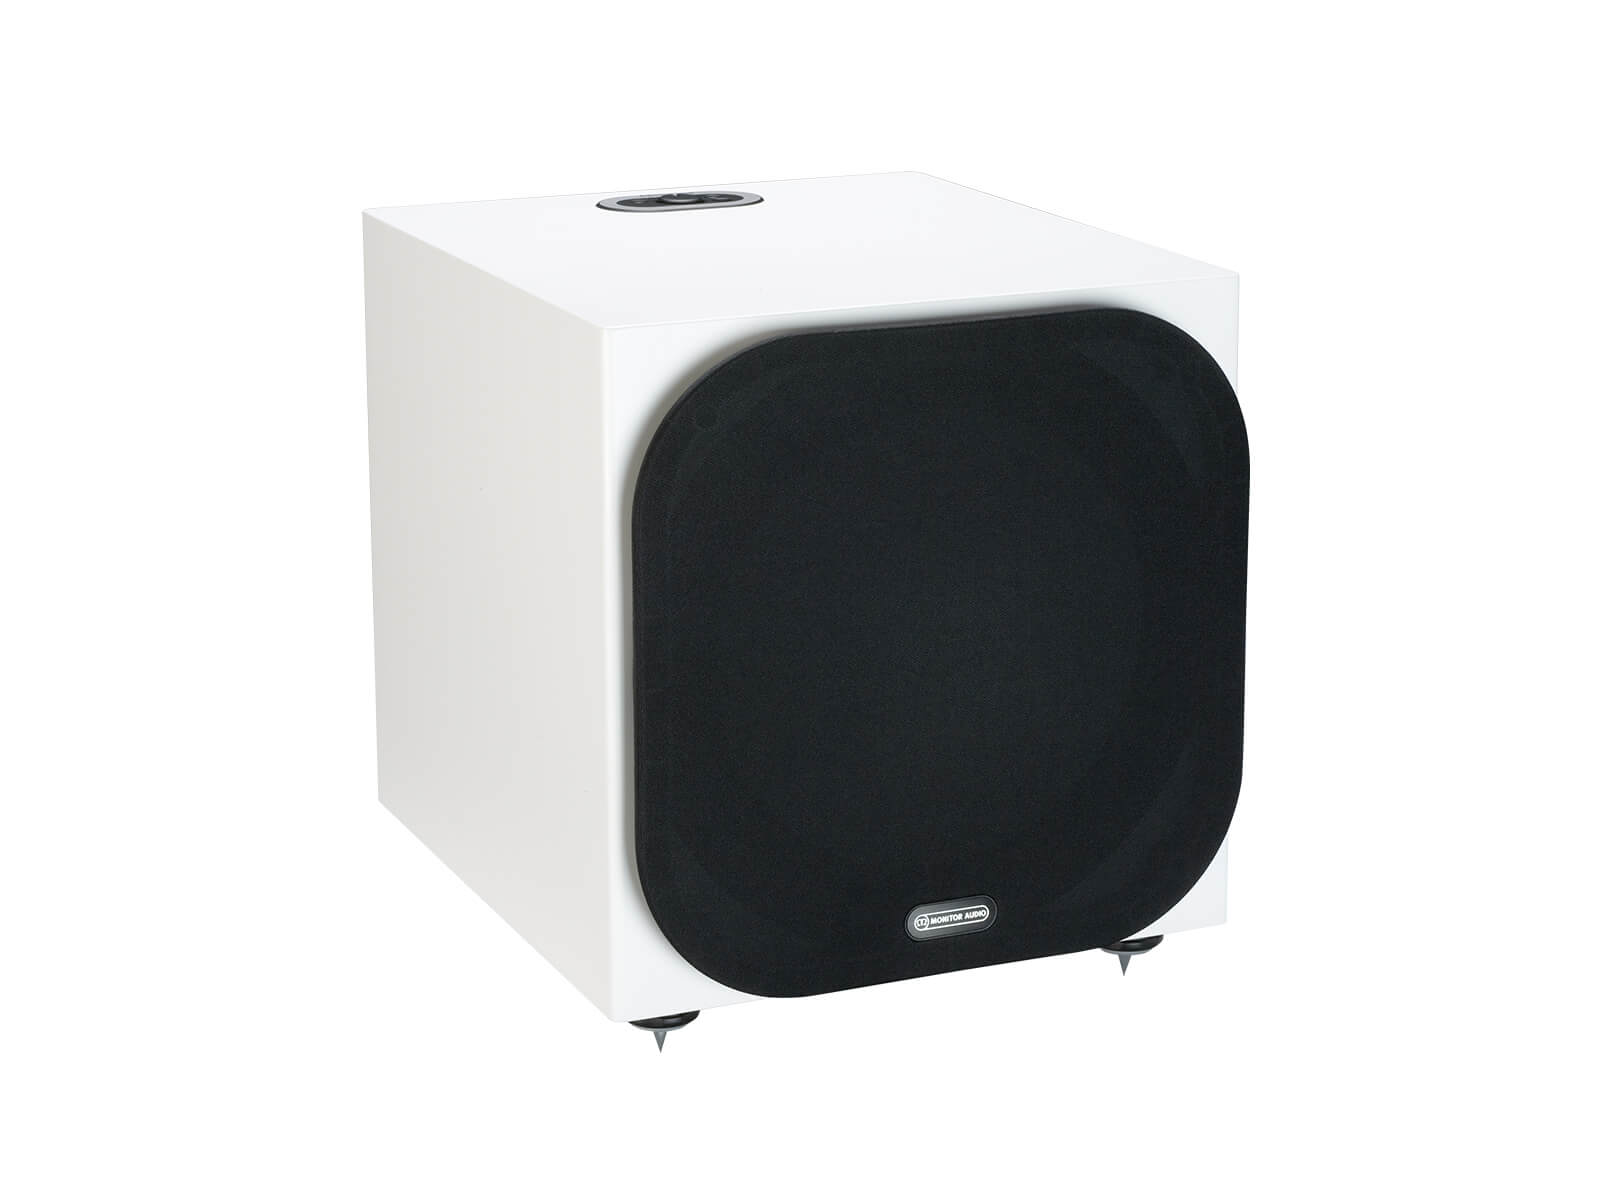 Silver W-12 subwoofer, featuring a grille and a satin white finish.